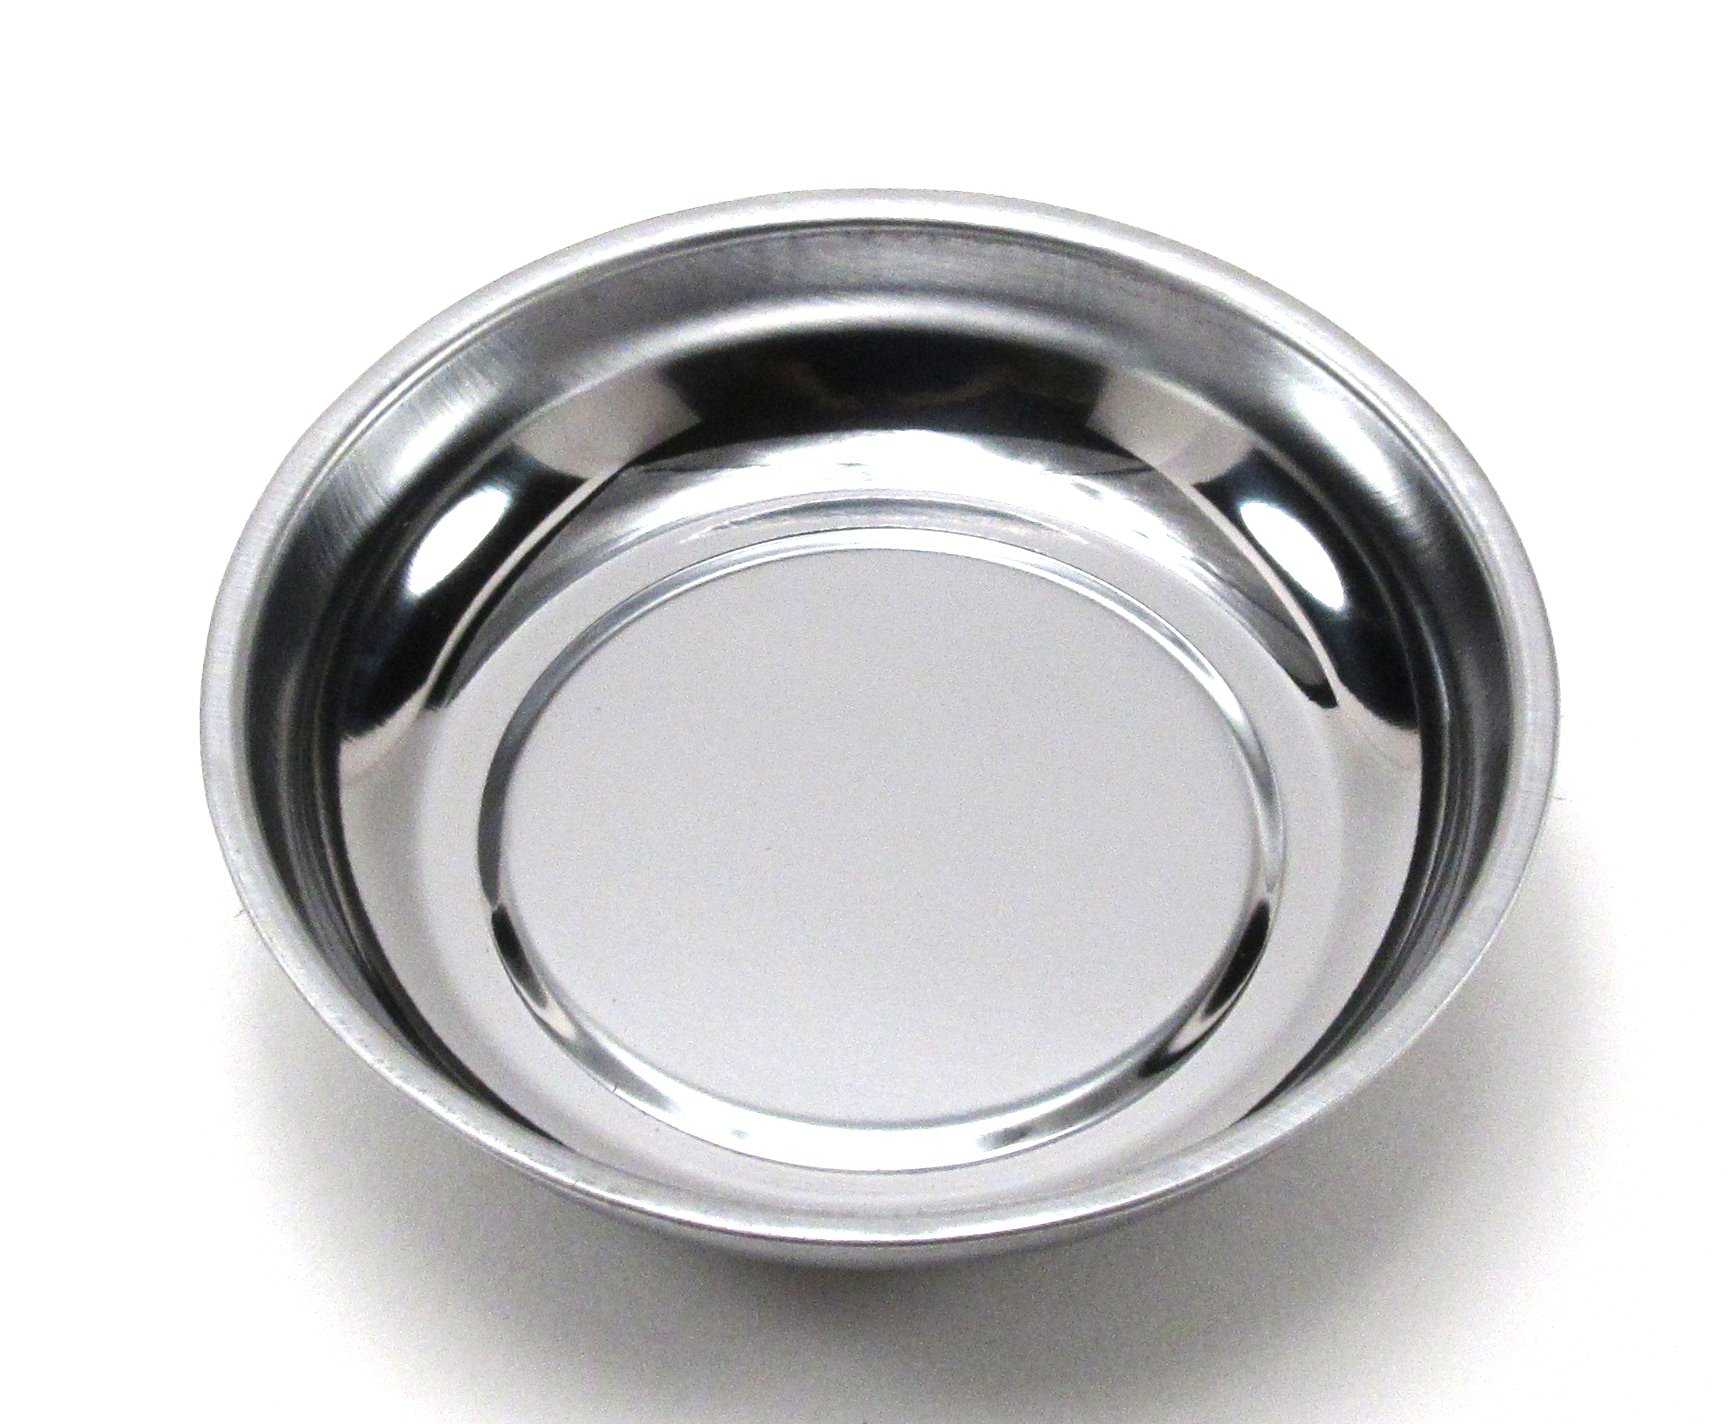 Elitexion Mechanic Workshop Magnetic Bowl Tray 4-inch (Pack of 4) by Elitexion (Image #2)